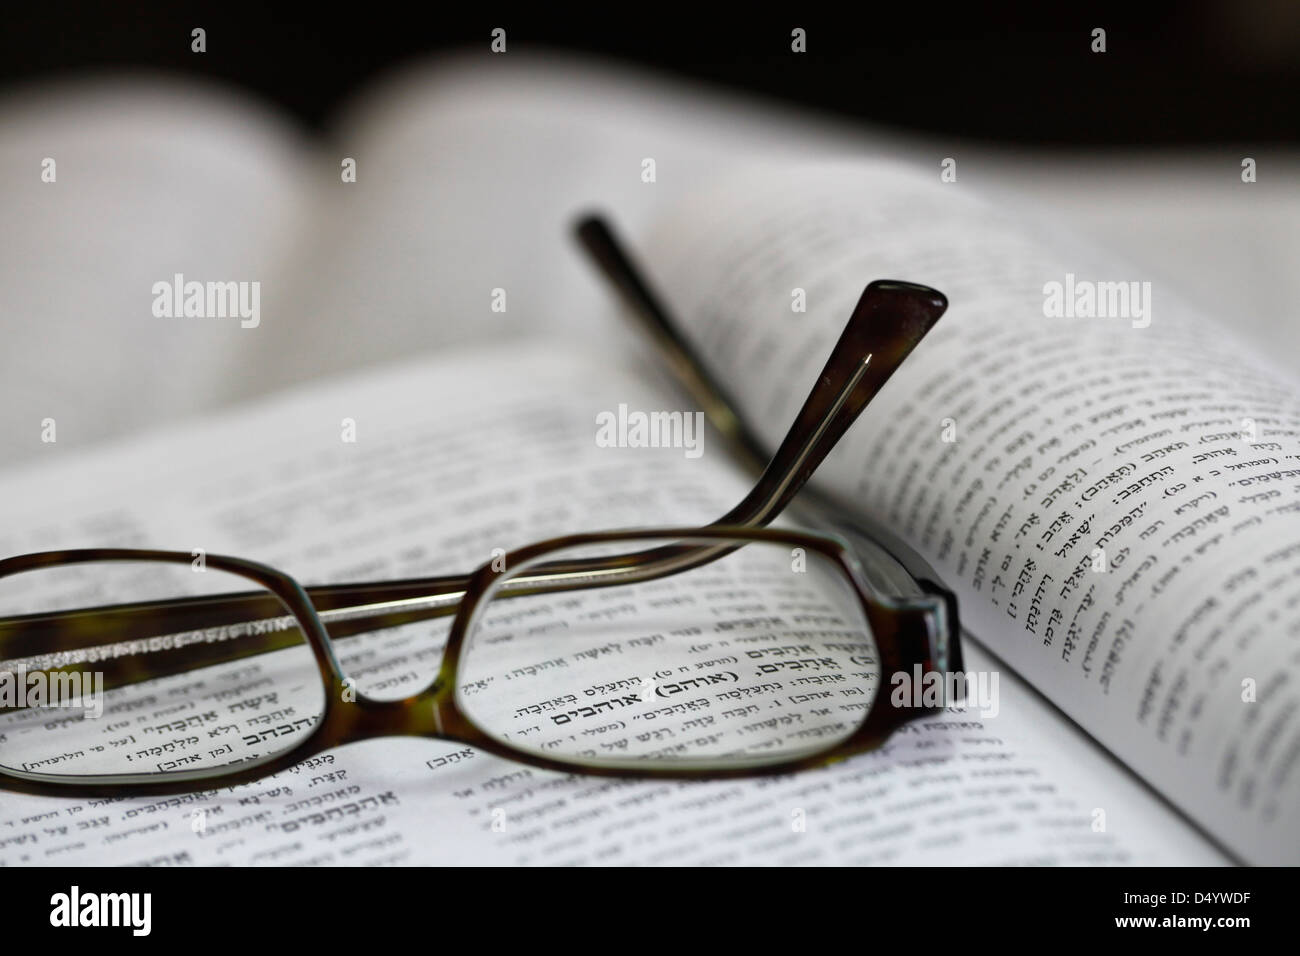 A Hebrew dictionary open at the word 'to love', viewed through spectacles - Stock Image